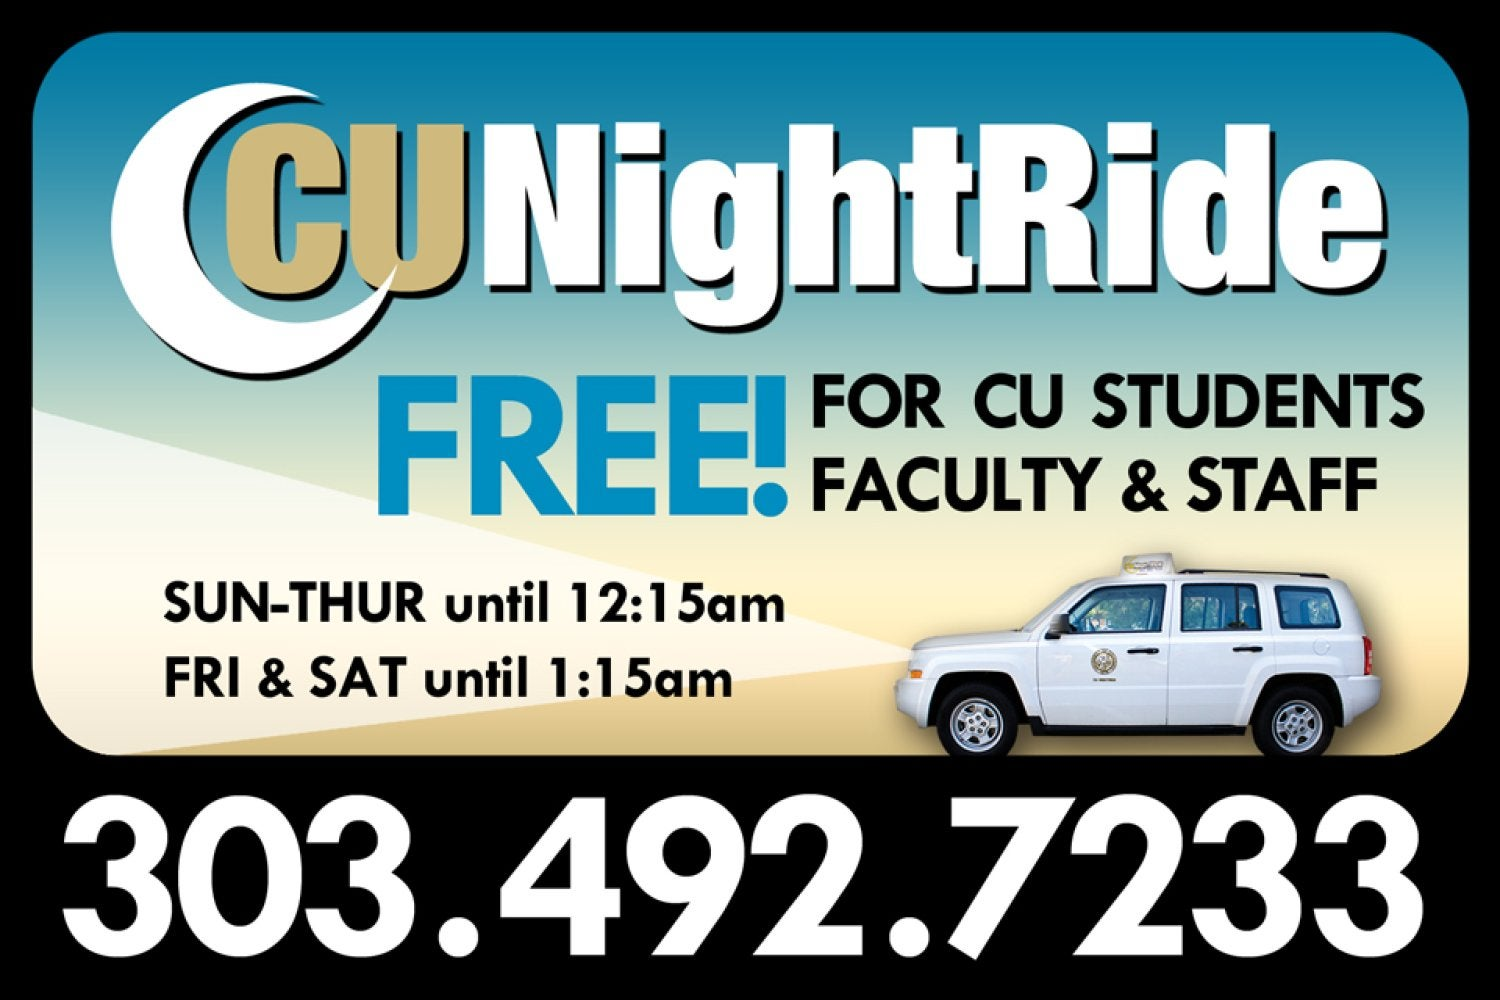 CU NightRide is Free for CU Students, Faculty and Staff. 303-492-7233